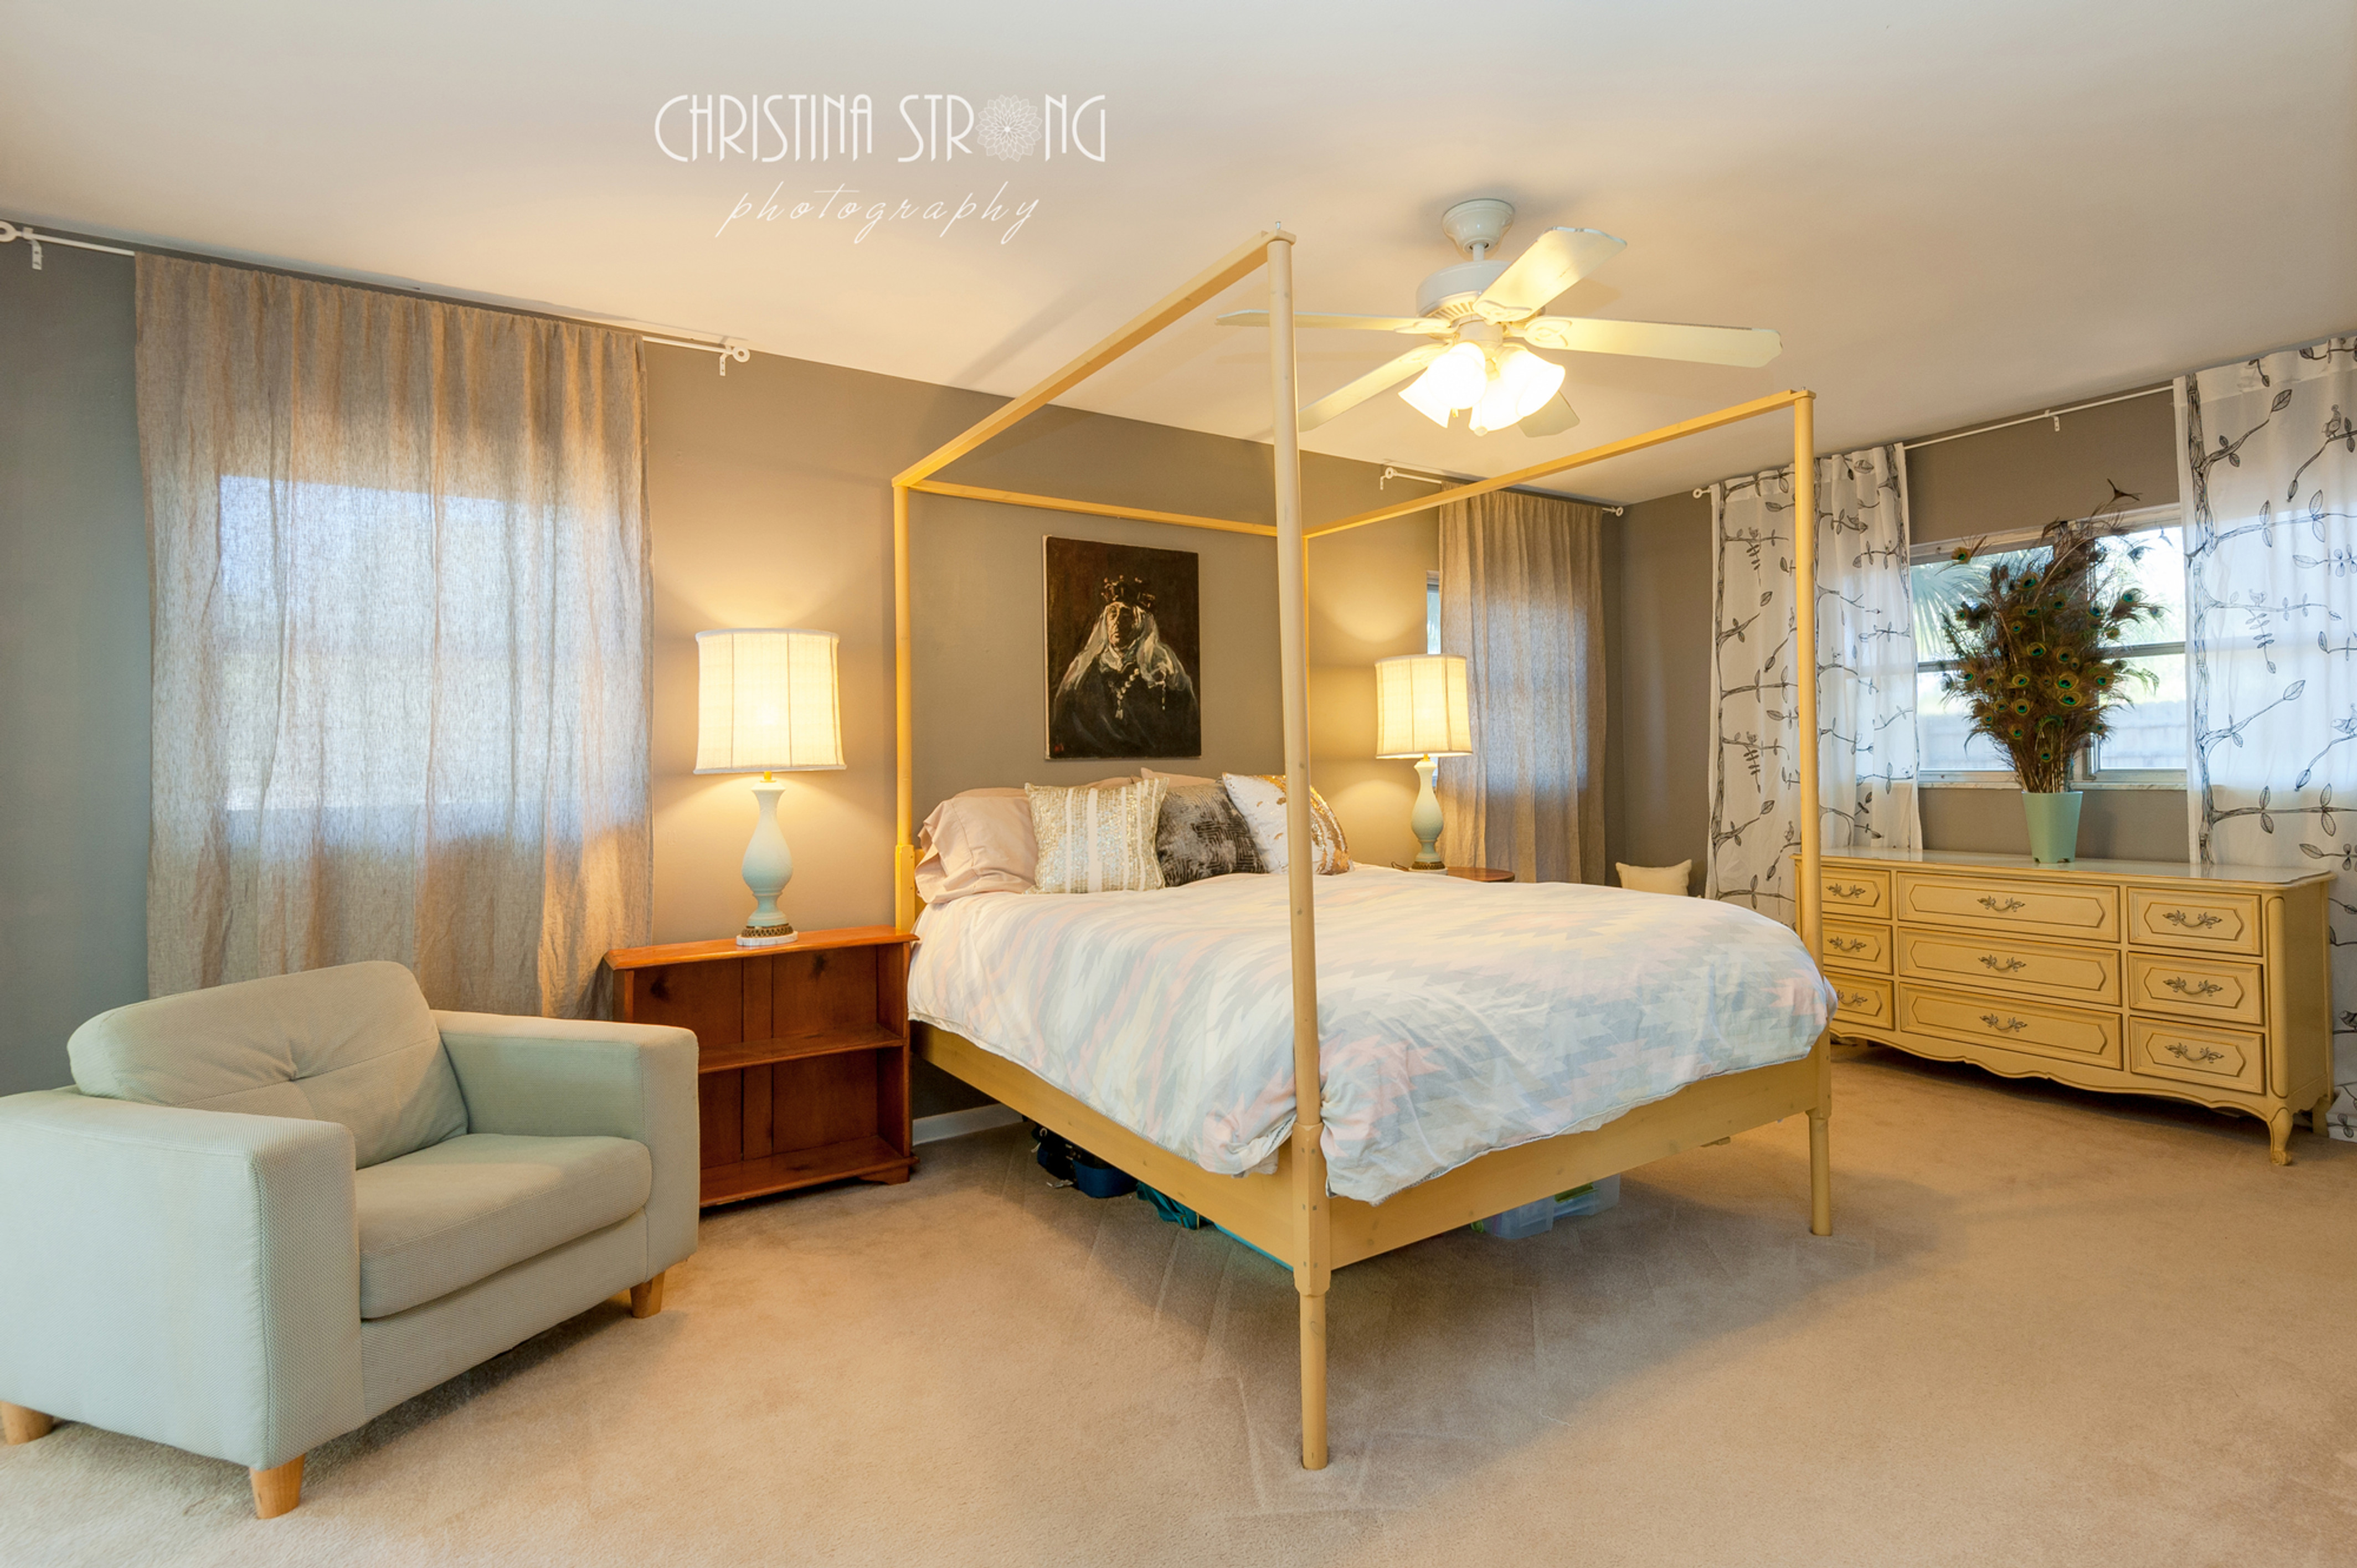 Extended Interior Photography